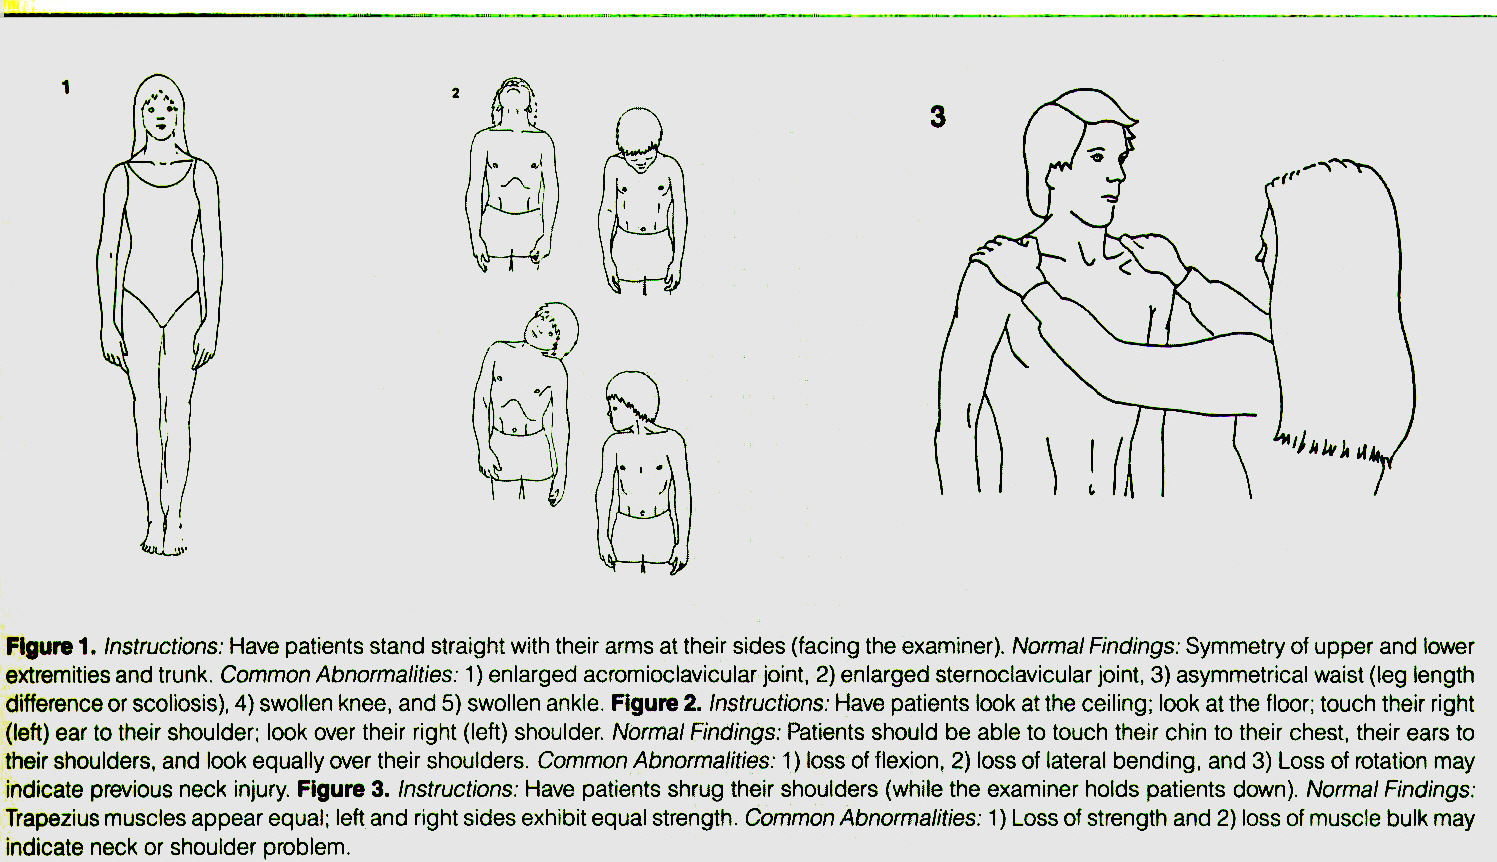 Figure 1. Instructions: Have patients stand straight with their arms at their sides (facing the examiner). Normal Findings: Symmetry of upper and lower extremities and trunk. Common Abnormalities: 1) enlarged acromioclavicular joint, 2) enlarged sternoclavicular joint, 3) asymmetrical waist (leg length difference or scoliosis), 4) swollen knee, and 5) swollen ankle. Figure 2. Instructions: Have patients look at the ceiling; look at the floor; touch their right (left) ear to their shoulder; look over their right (left) shoulder. Normal Findings: Patients should be able to touch their chin to their chest, their ears to their shoulders, and look equally over their shoulders. Common Abnormalities: 1 ) loss of flexion, Z) loss of lateral bending, and 3) Loss of rotation may indicate previous neck injury. Figure 3. Instructions: Have patients shrug their shoulders (while the examiner holds patients down). Normal Findings: Trapezius muscles appear equal; left and right sides exhibit equal strength. Common Abnormalities: 1) Loss of strength and 2) loss of muscle bulk may indicate neck or shoulder problem.